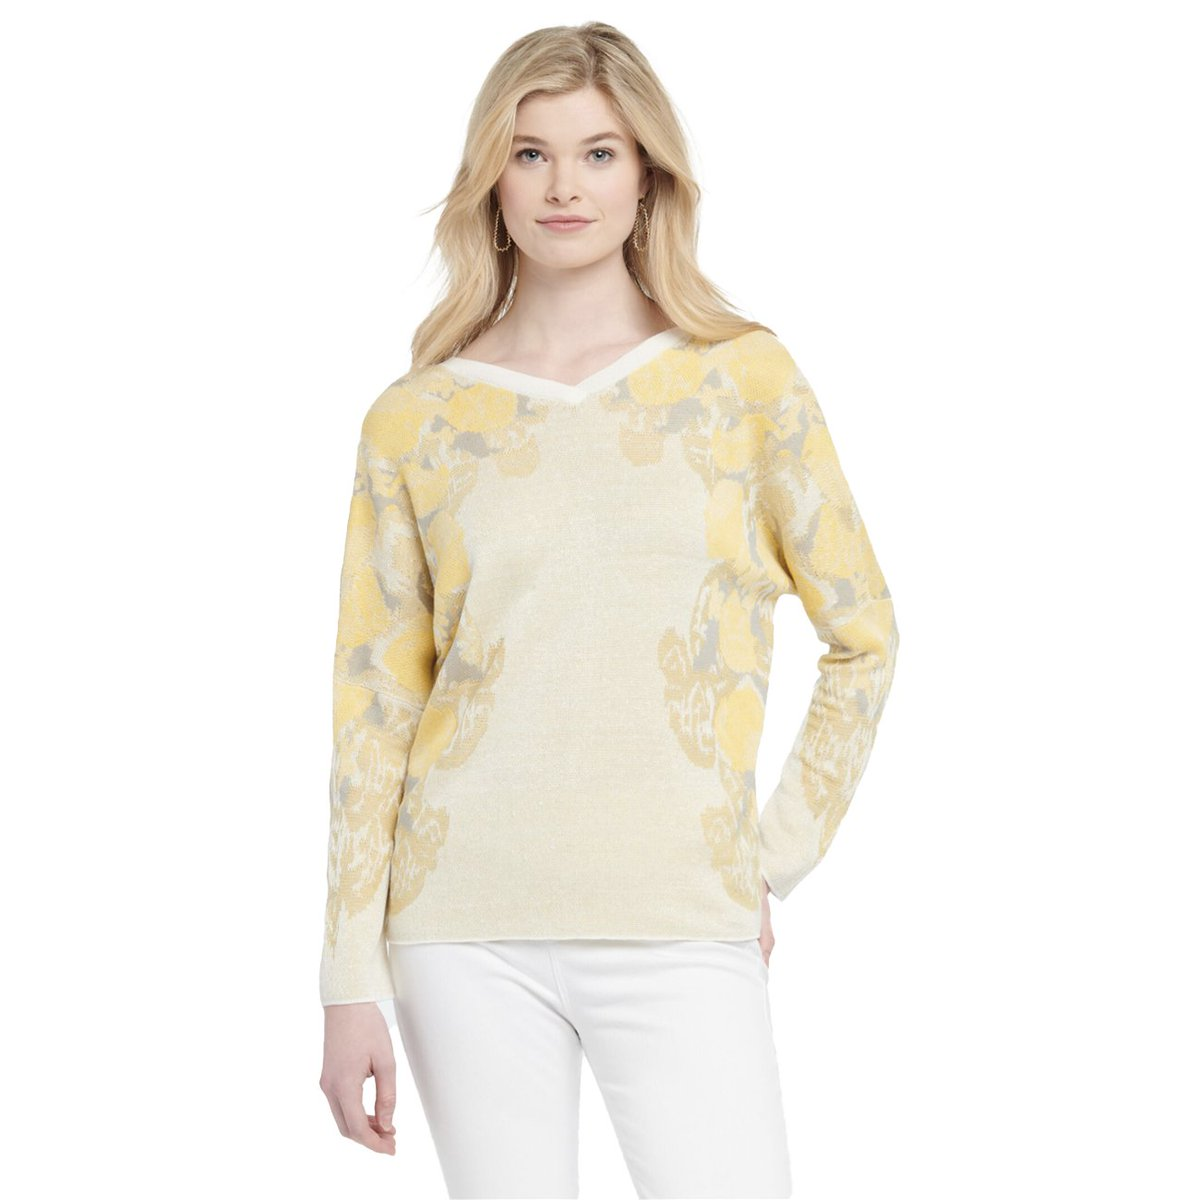 Lemons Summer Sweater by NIC+ZOE, 1X 2X, front-to-back reversible!   Shop here: http://bit.ly/3gArSqn  The first person to use discount code H3RS9YYWTM26 at checkout will get HALF OFF.  #plussize #curvywomen #womensfashion #fashion #bodypositive #plussizefashion #NIC+ZOEpic.twitter.com/e06jiLrzHn